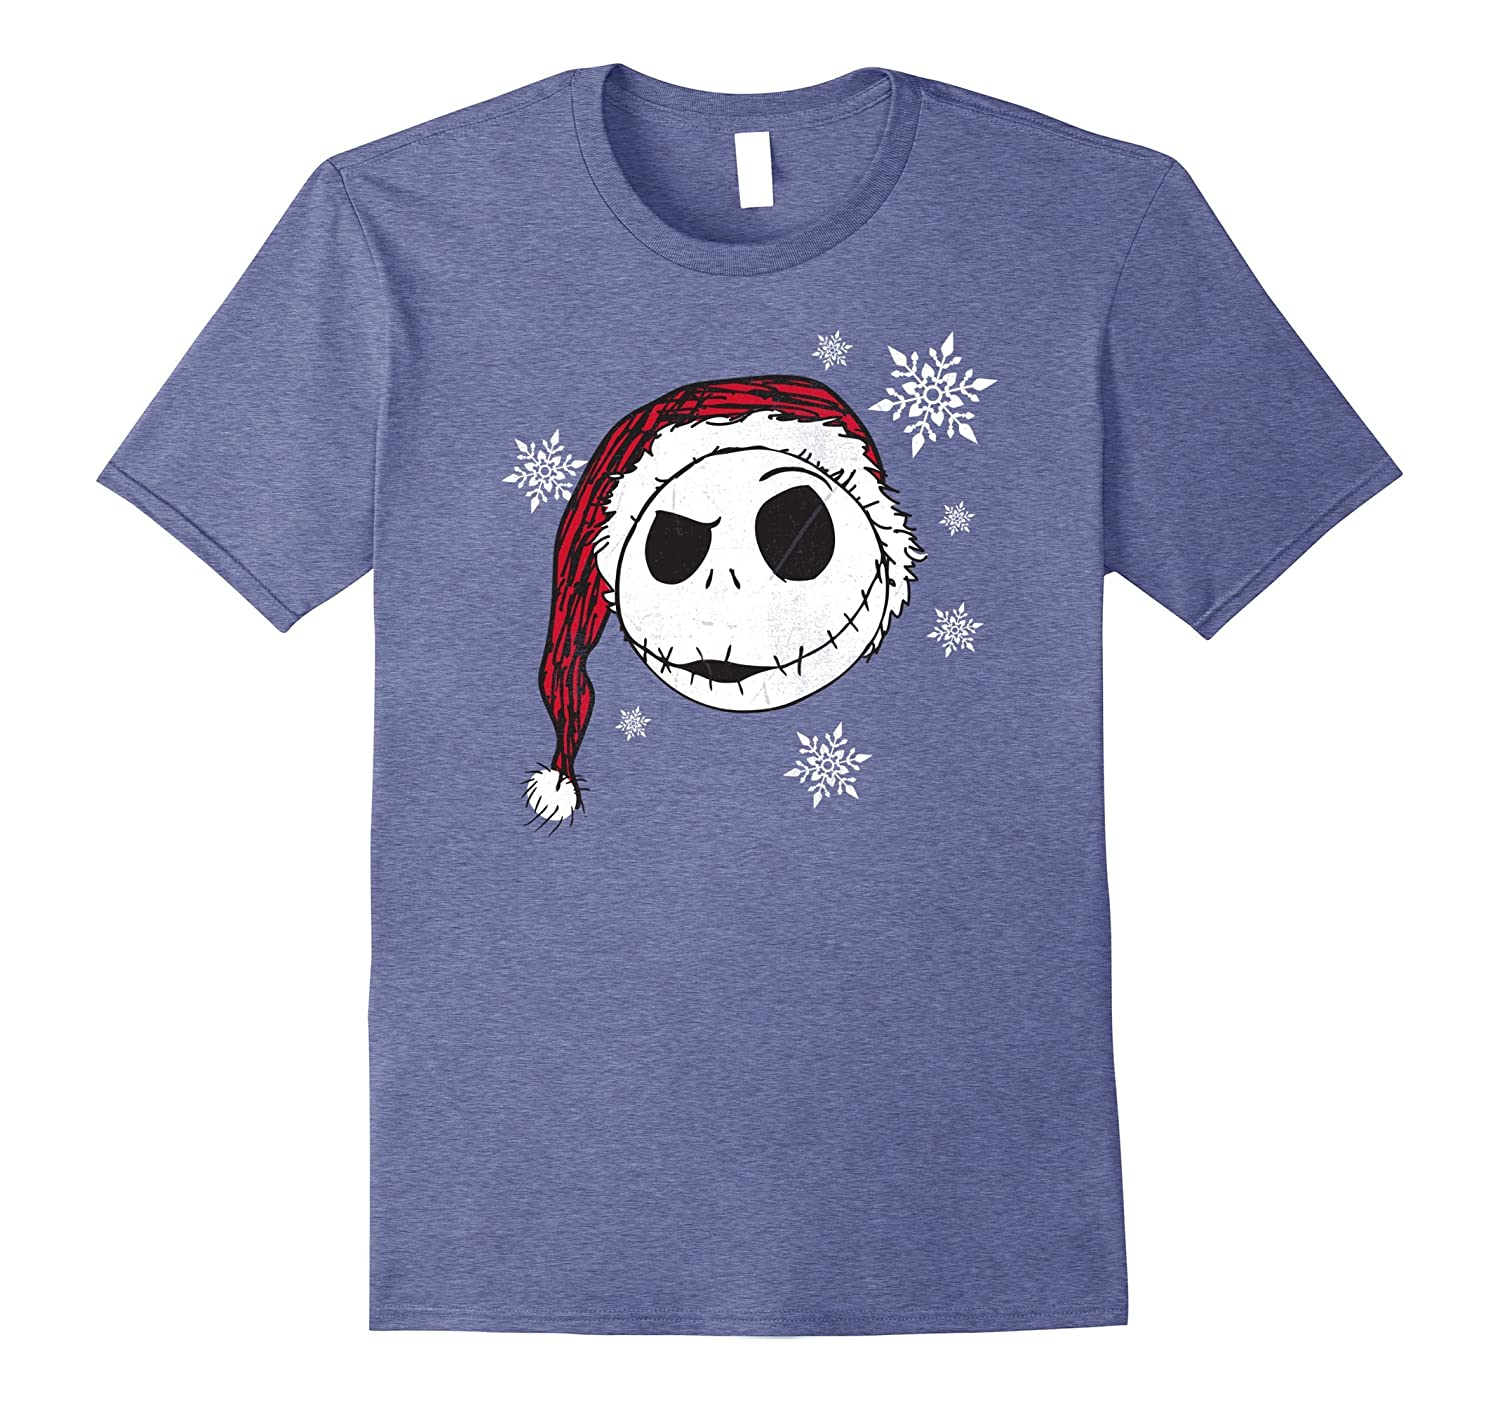 Amazon.com: Disney Nightmare Before Christmas Snowflake Tshirt: Clothing